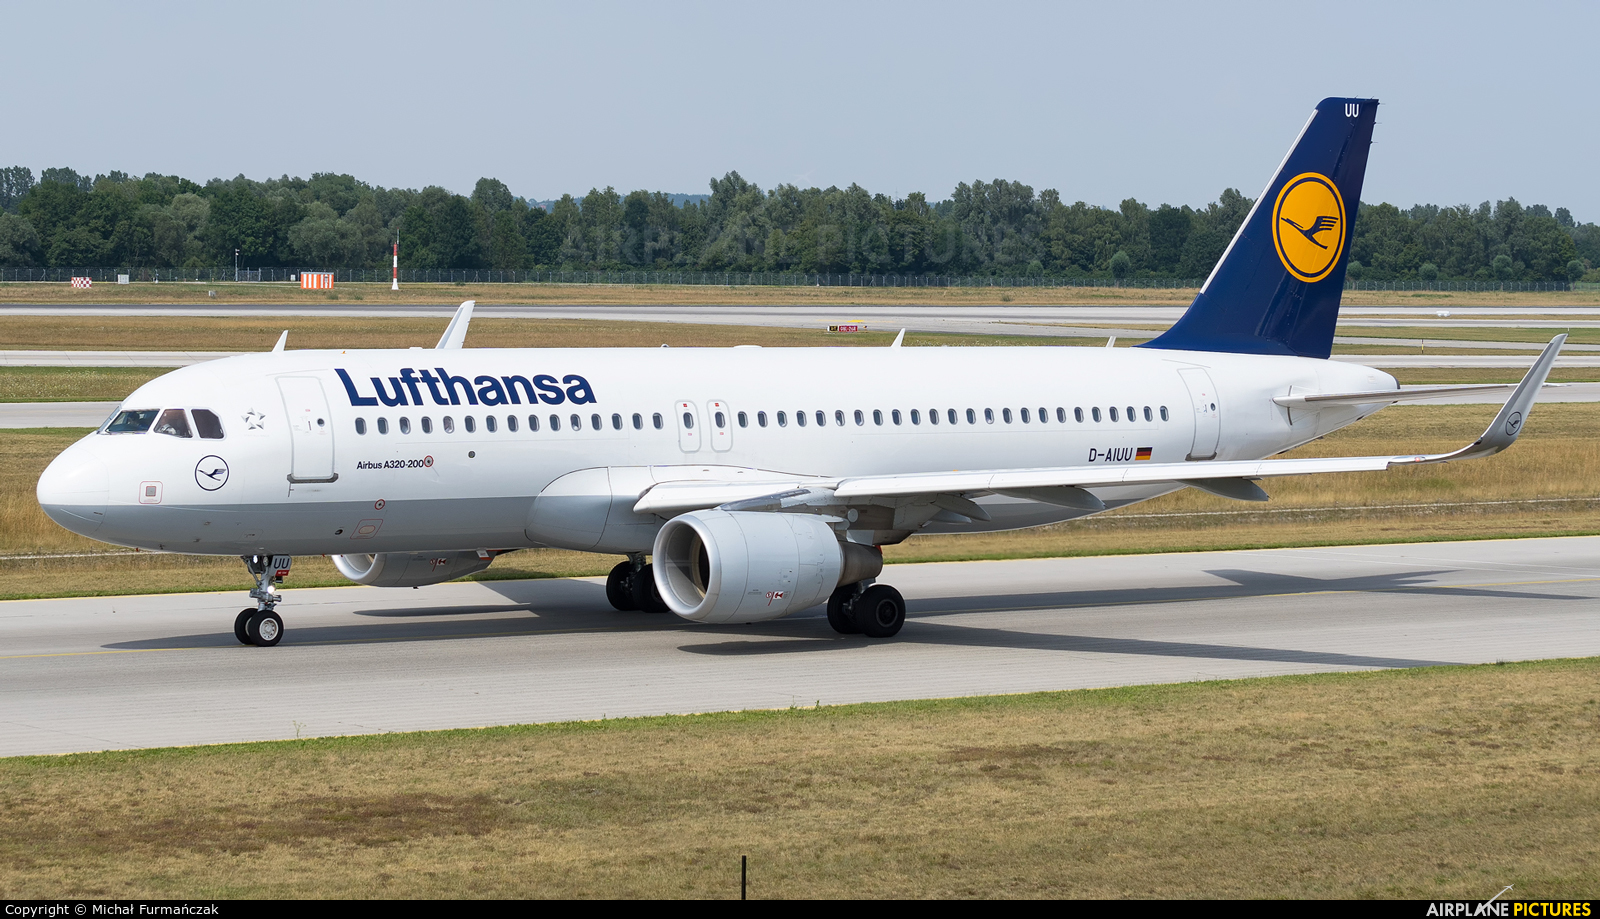 Lufthansa D-AIUU aircraft at Munich